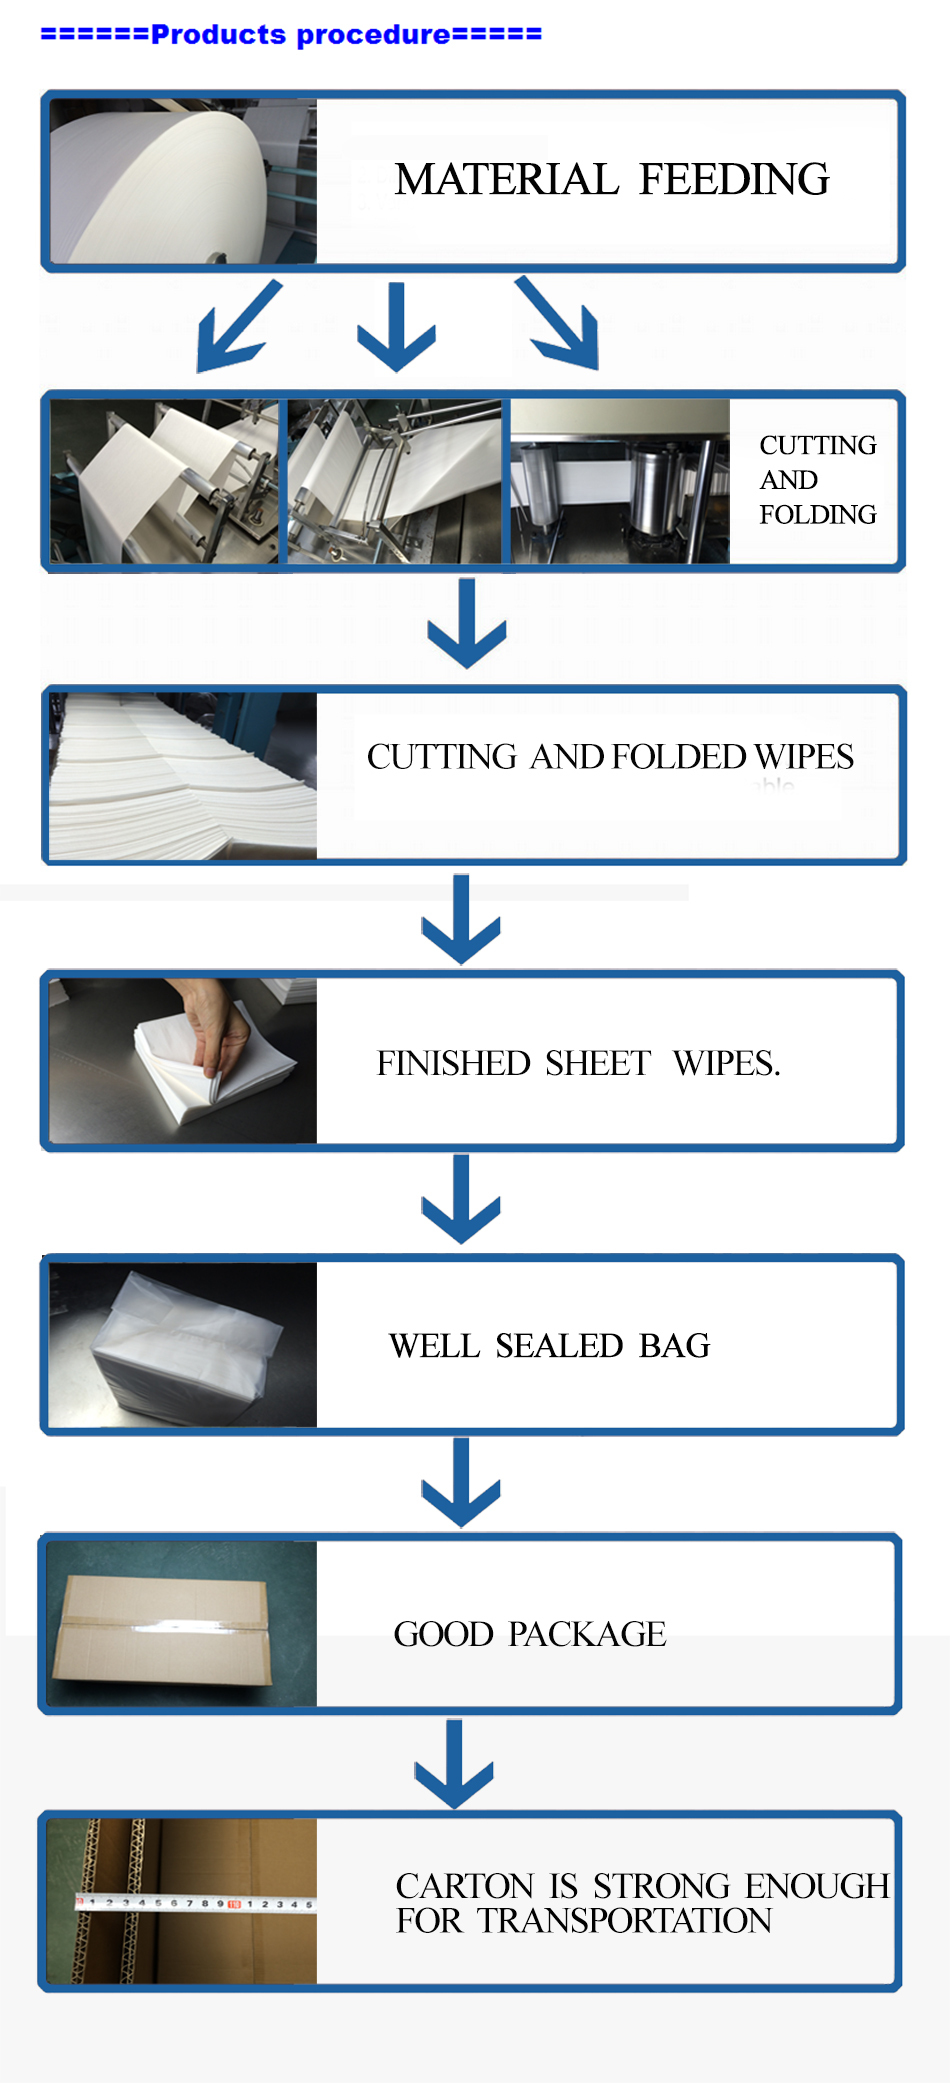 Best performing products high performance automatic blanket wash cloth